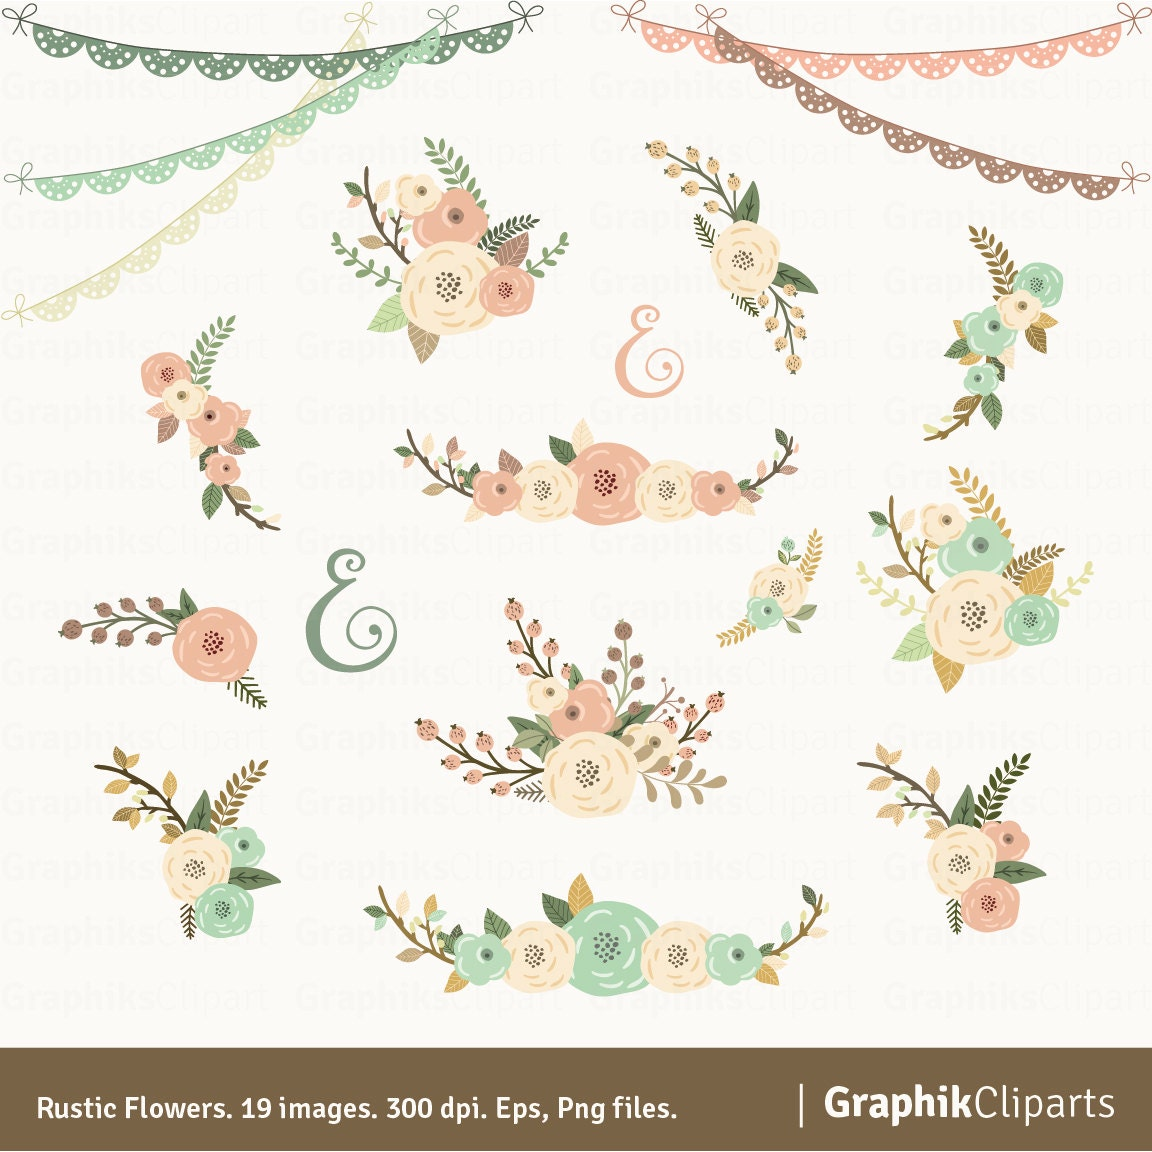 rustic flowers clipart floral clipart floral bouquet rustic wedding clipart free download rustic wedding clip art images